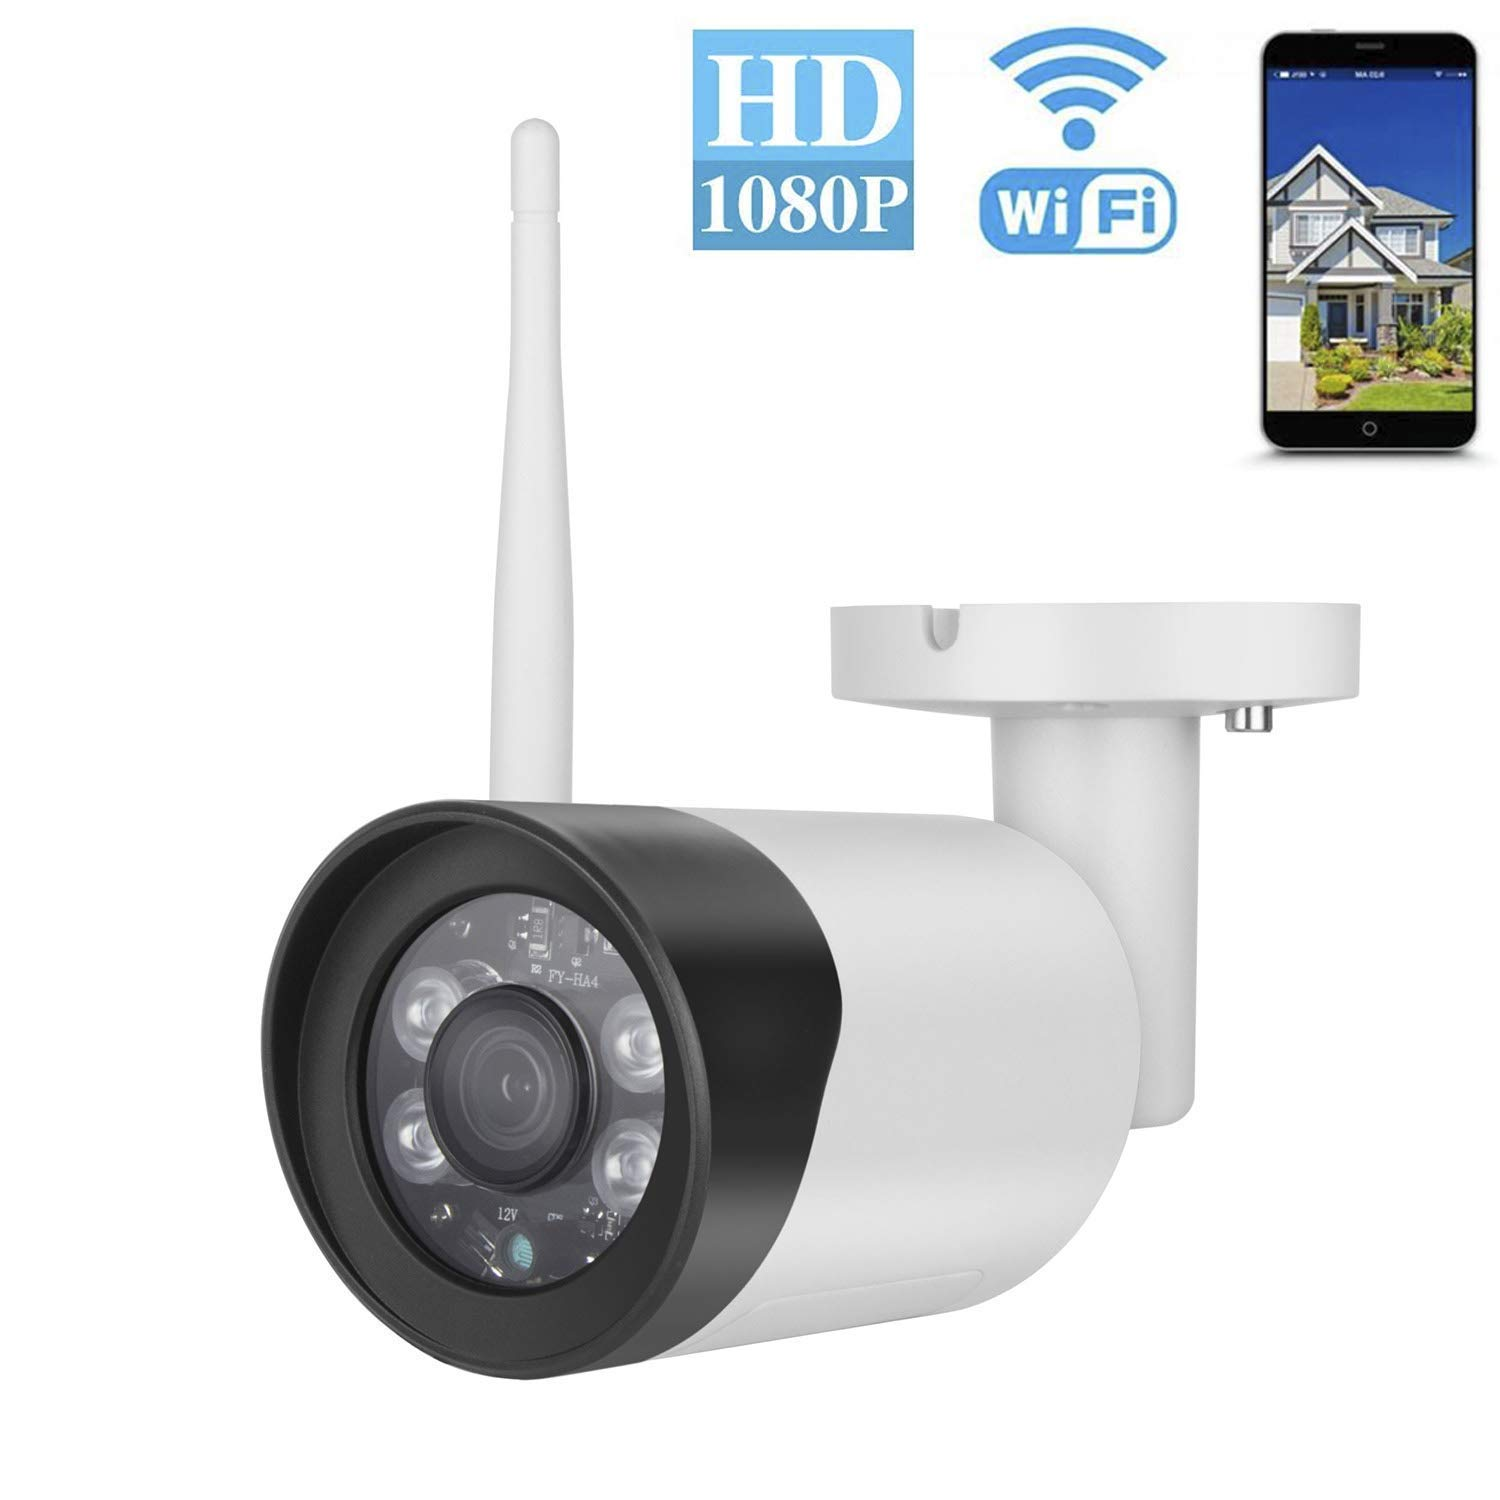 Outdoor Security Camera, 1080P Wireless Security Camera with Two-Way Audio, IP66 Waterproof, Motion Detection, Night Vision, Remote Viewing WiFi Security Cameras for Indoor Outdoor,SD Card Storage